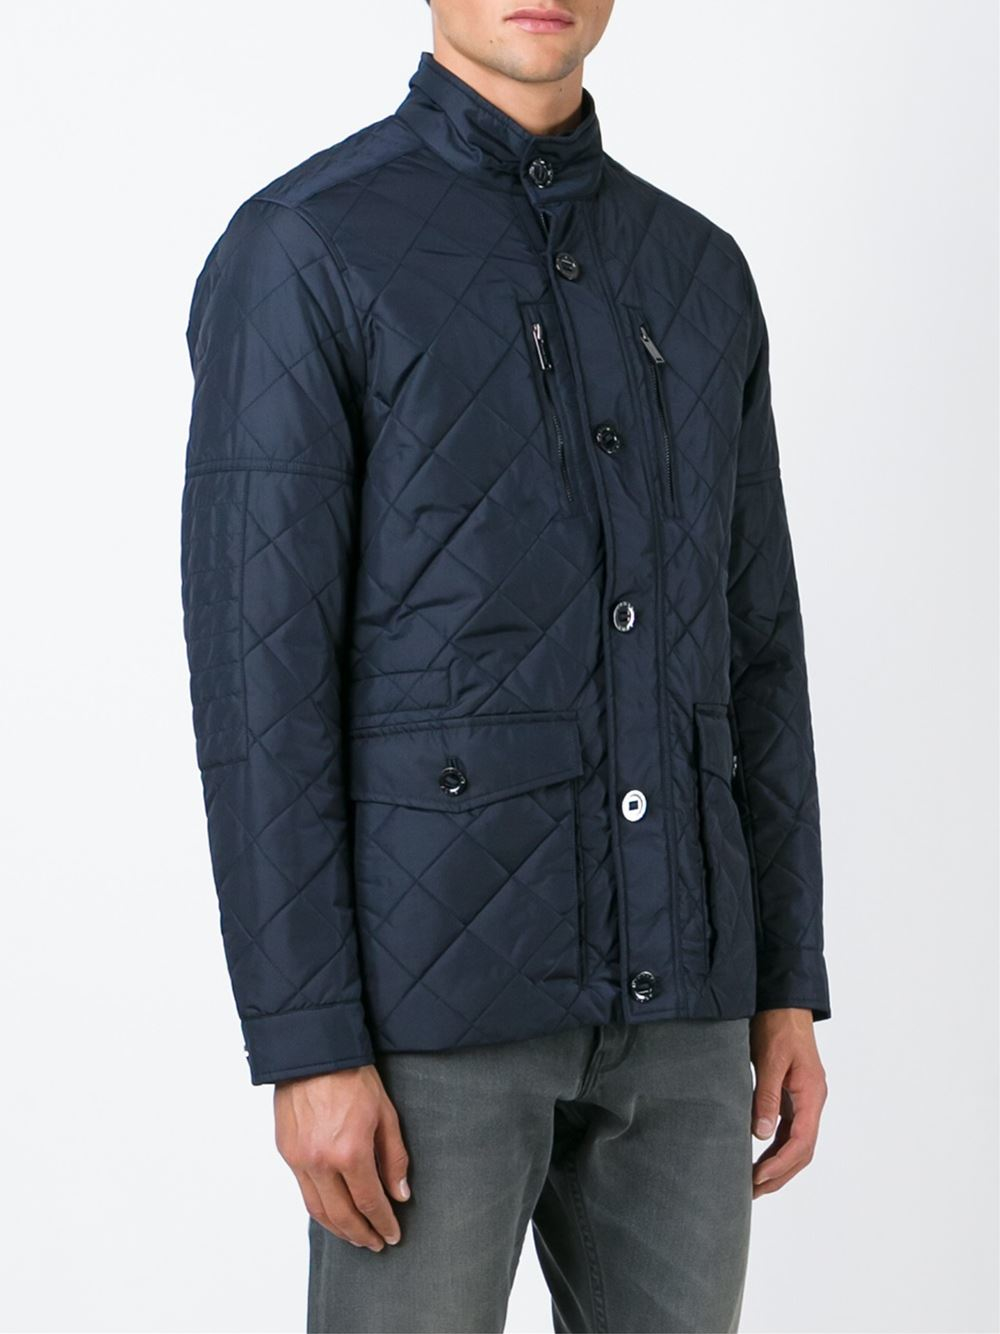 Michael kors Quilted Jacket in Blue for Men | Lyst